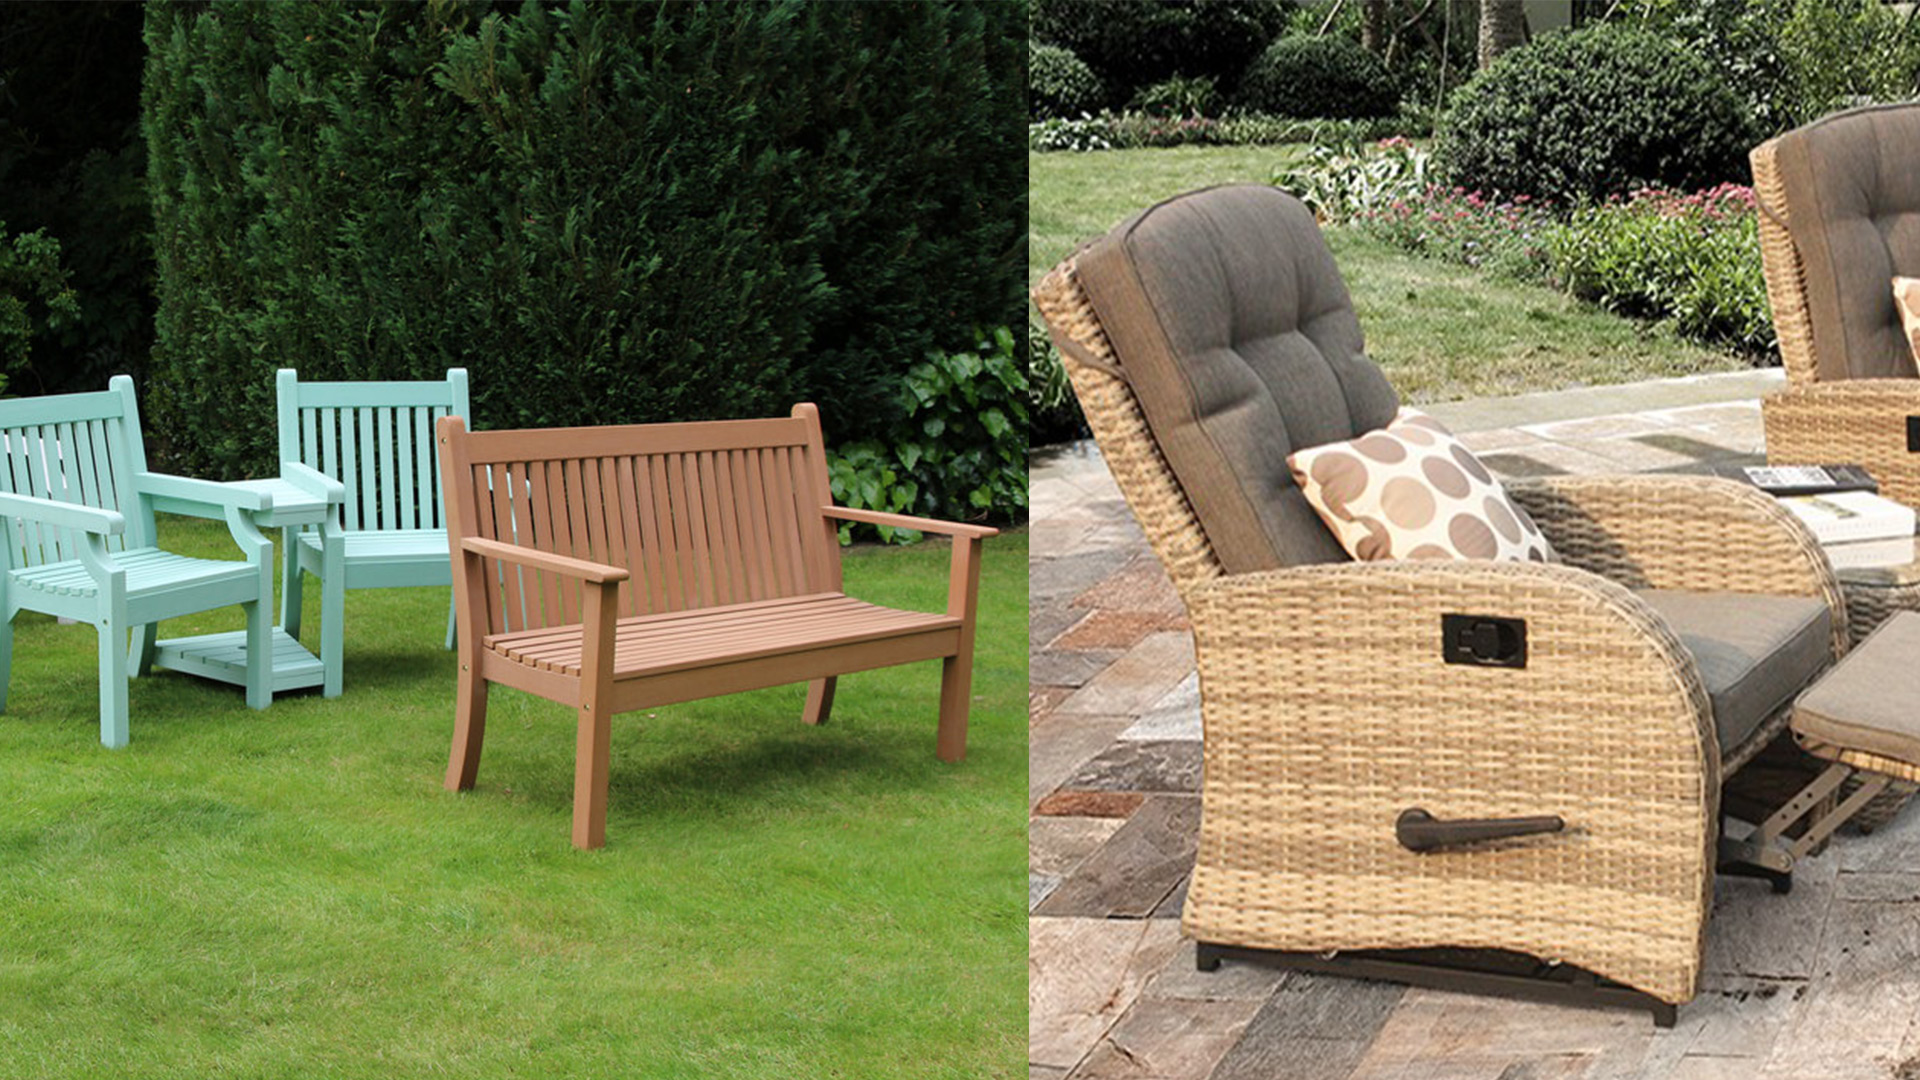 Awe Inspiring Garden Furniture Online Uk From Garden Centre Shopping Home Interior And Landscaping Ologienasavecom